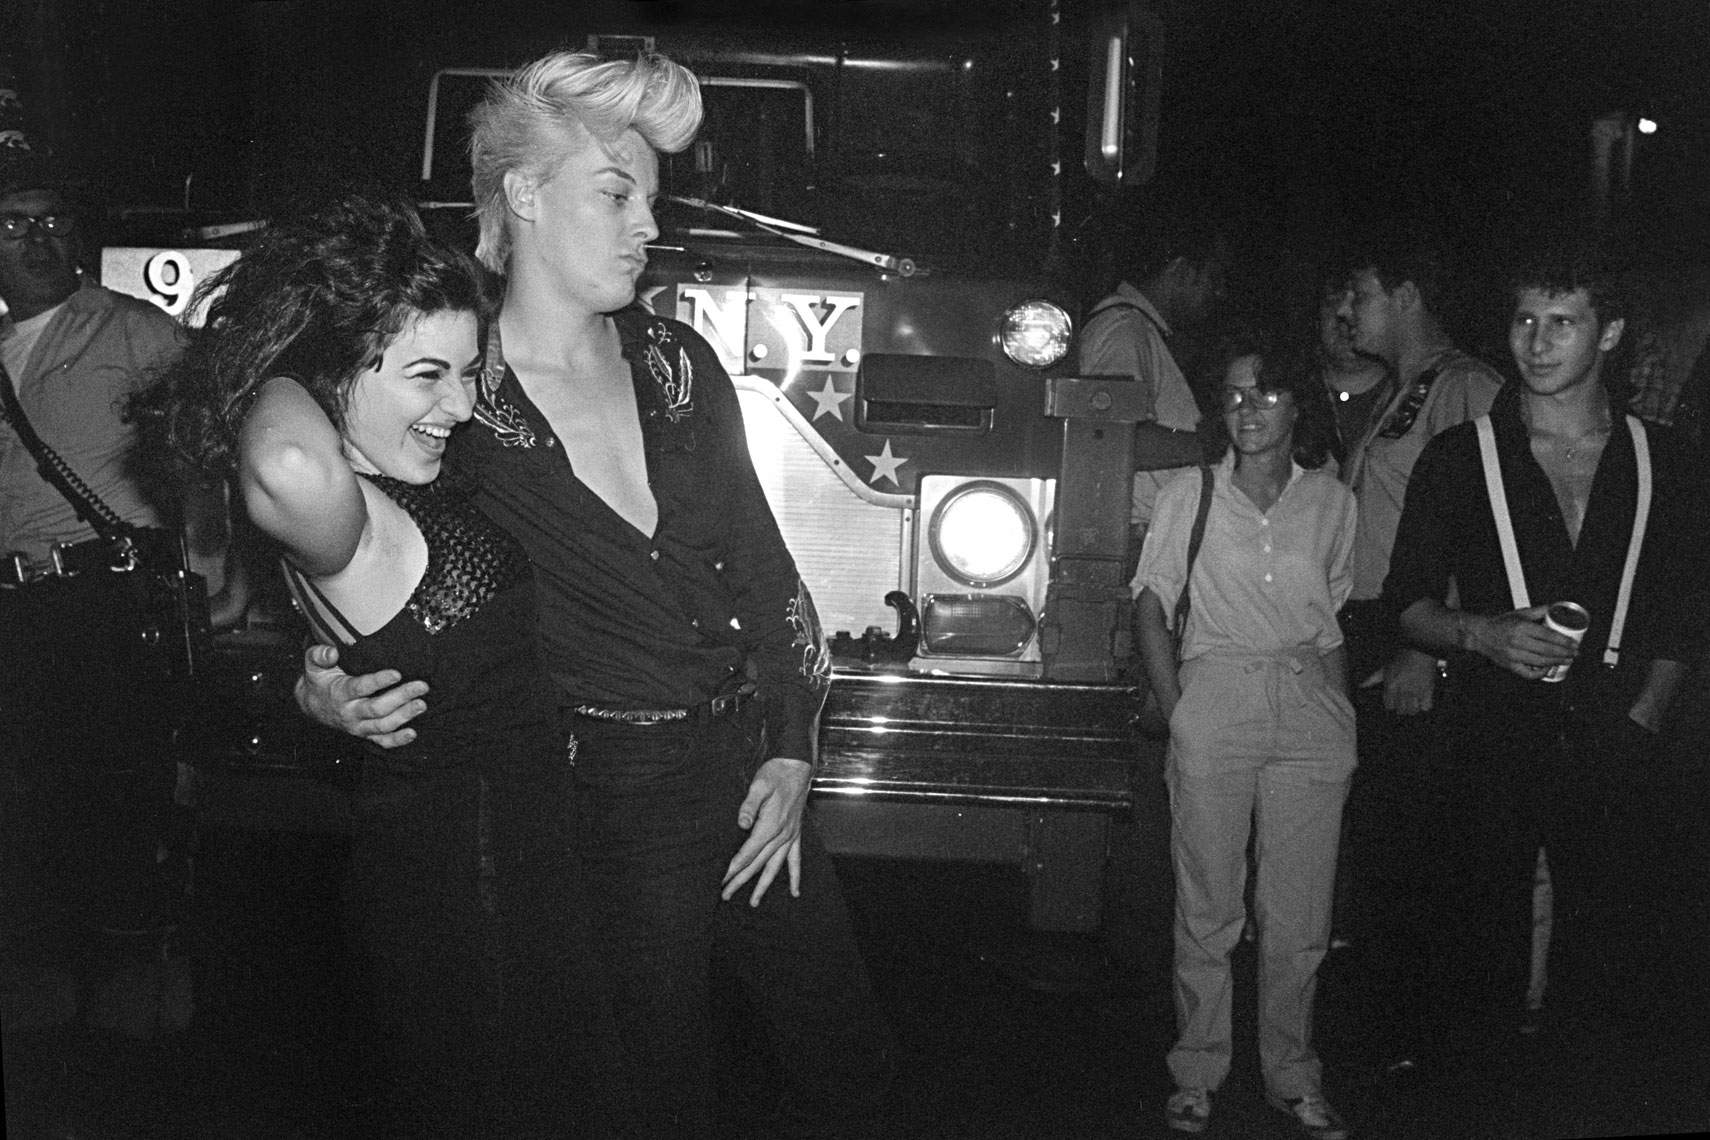 37_Club57_Elvis-Memorial-Party-out-on-street-after-fire-in-Club_John-Sex-and-April-Palmieri_0880.jpg